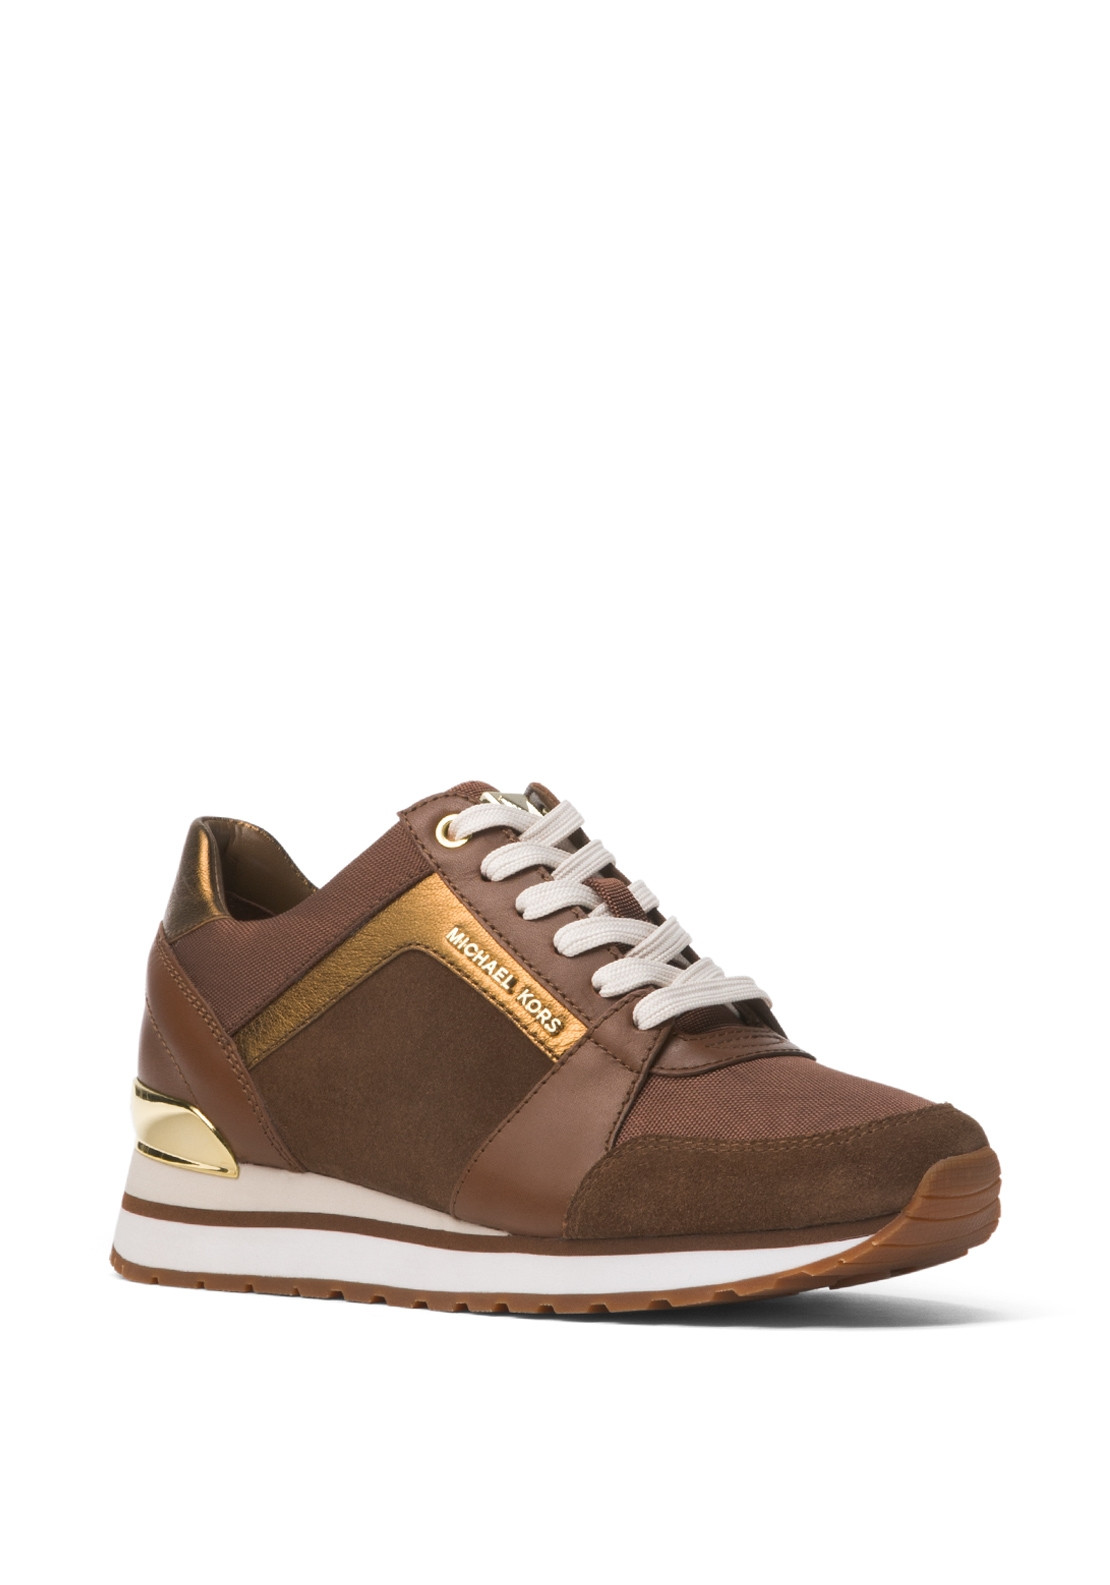 c43d3494c27 MICHAEL Michael Kors Billie Canvas and Leather Trainers, Caramel. 45% OFF